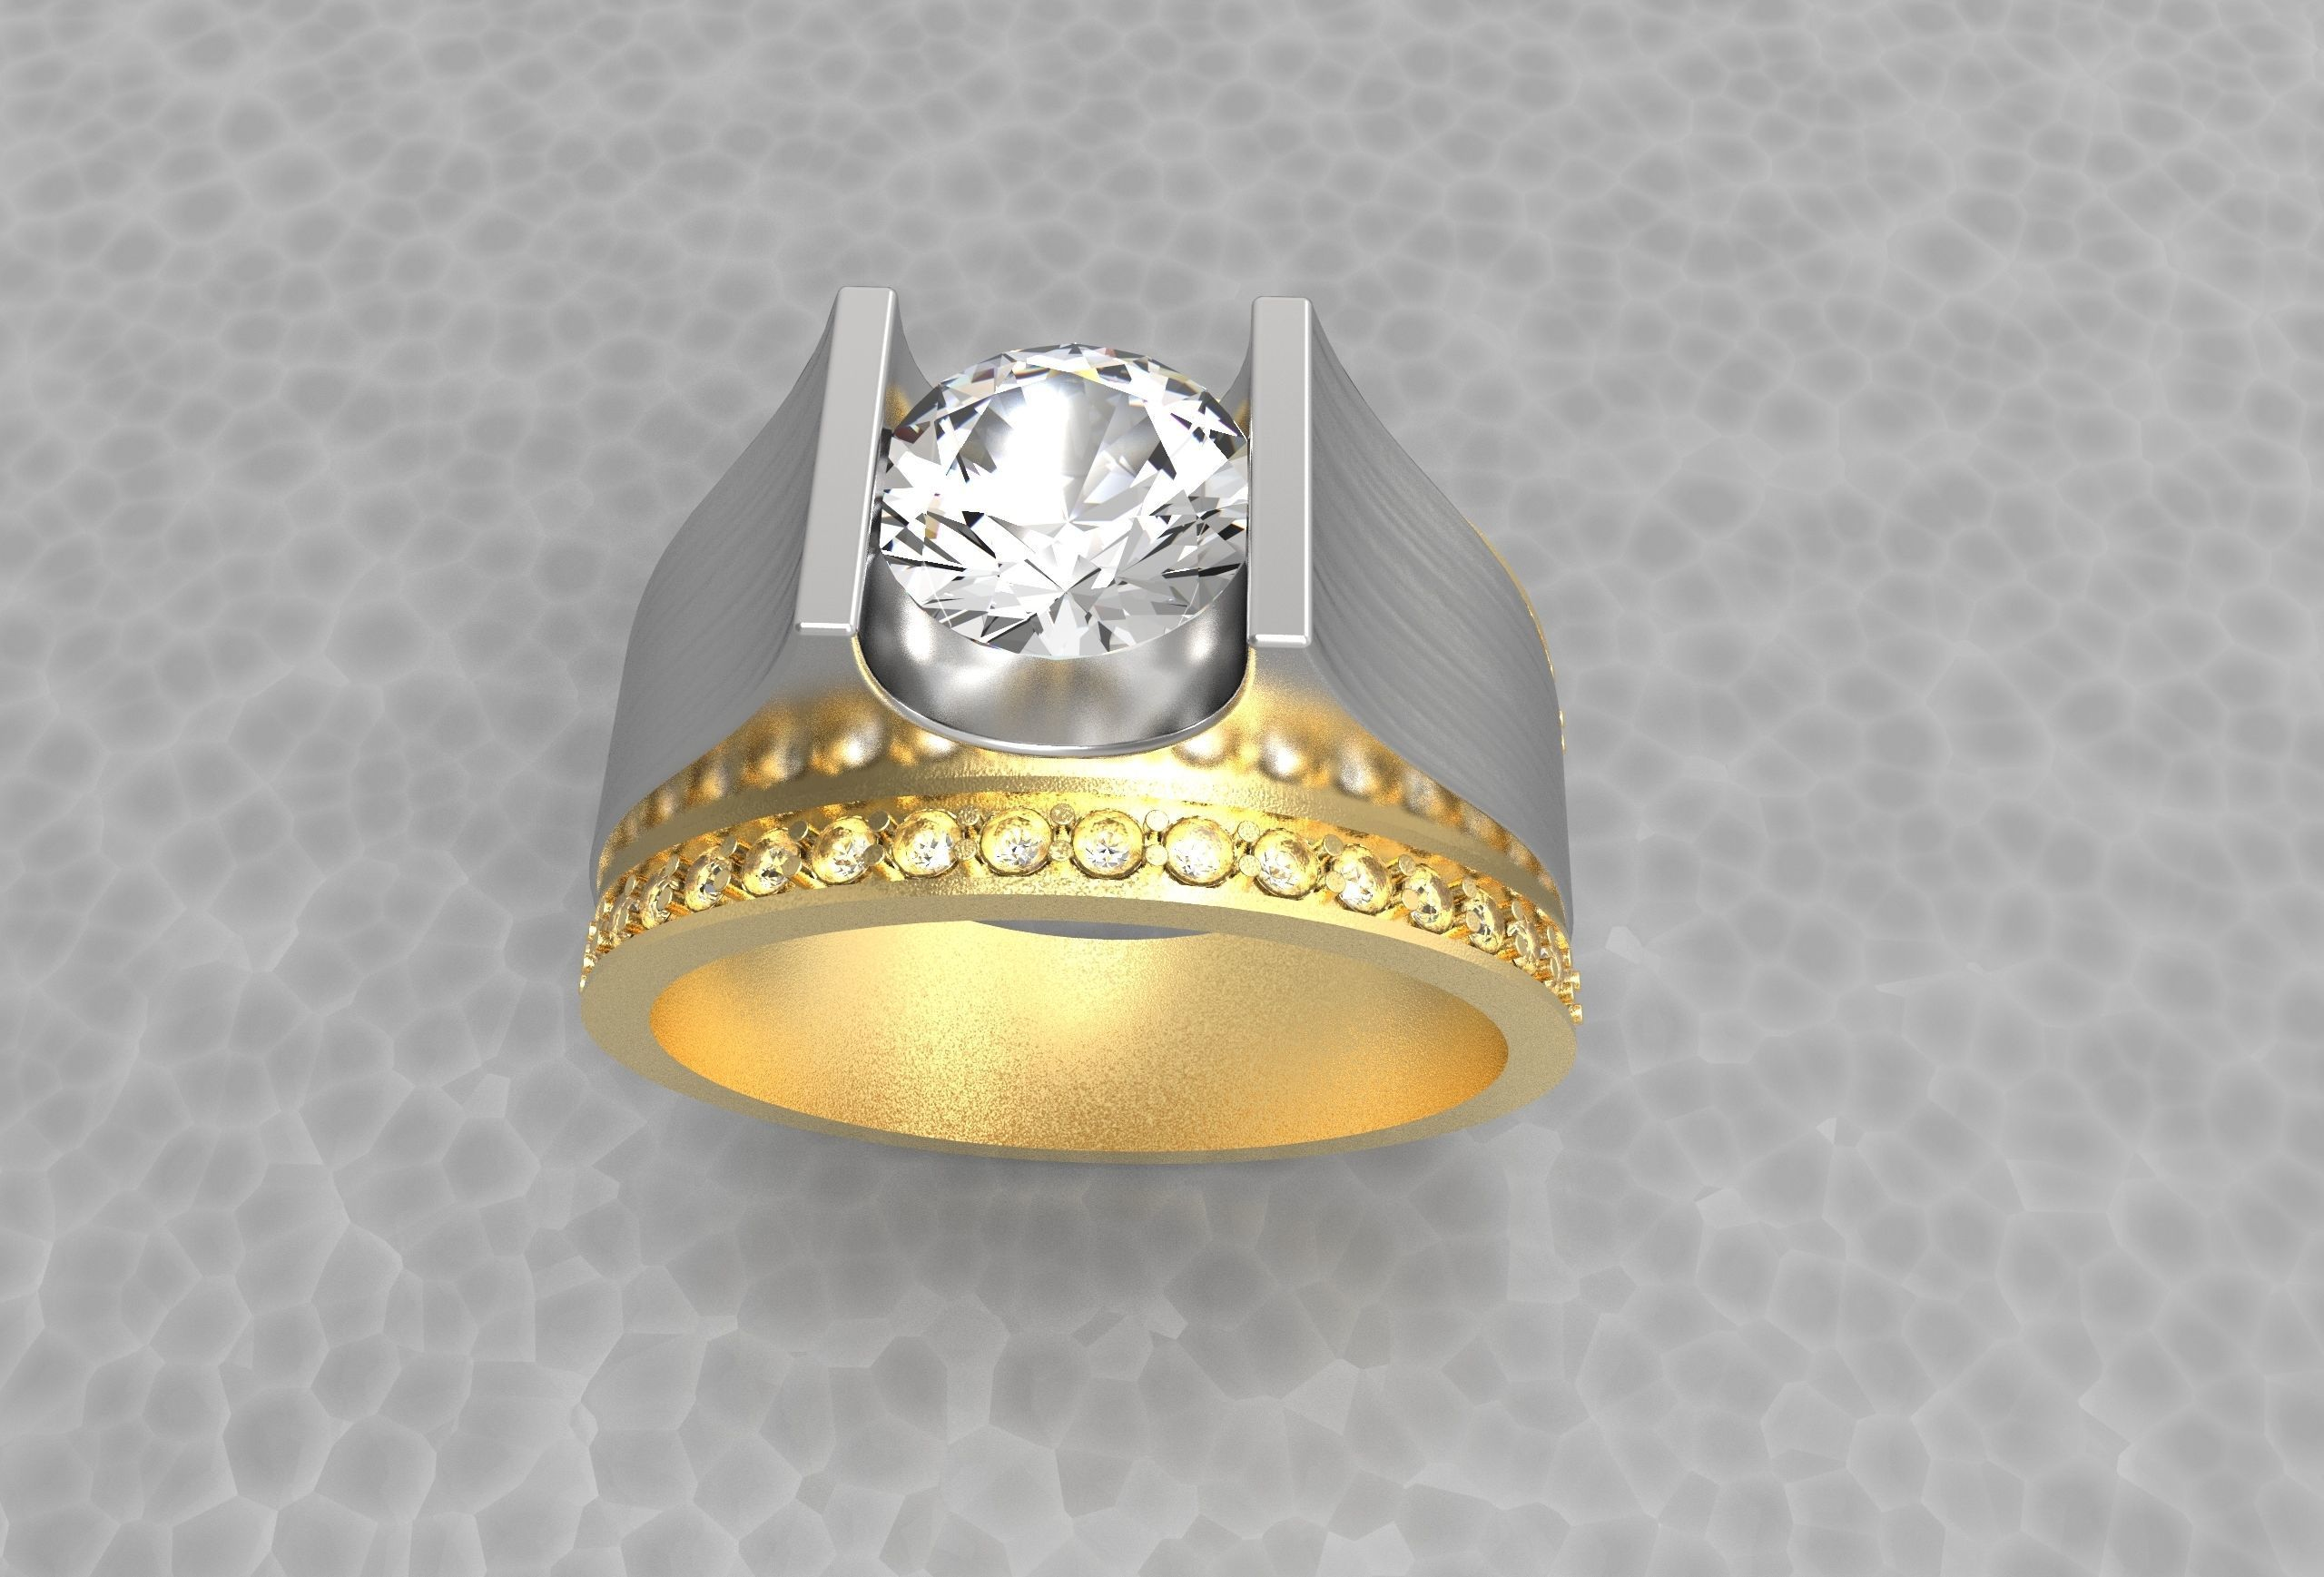 weddingbee athelred your cut princess one a s ring engagement on ct halo com is size u diamond finger too carats big